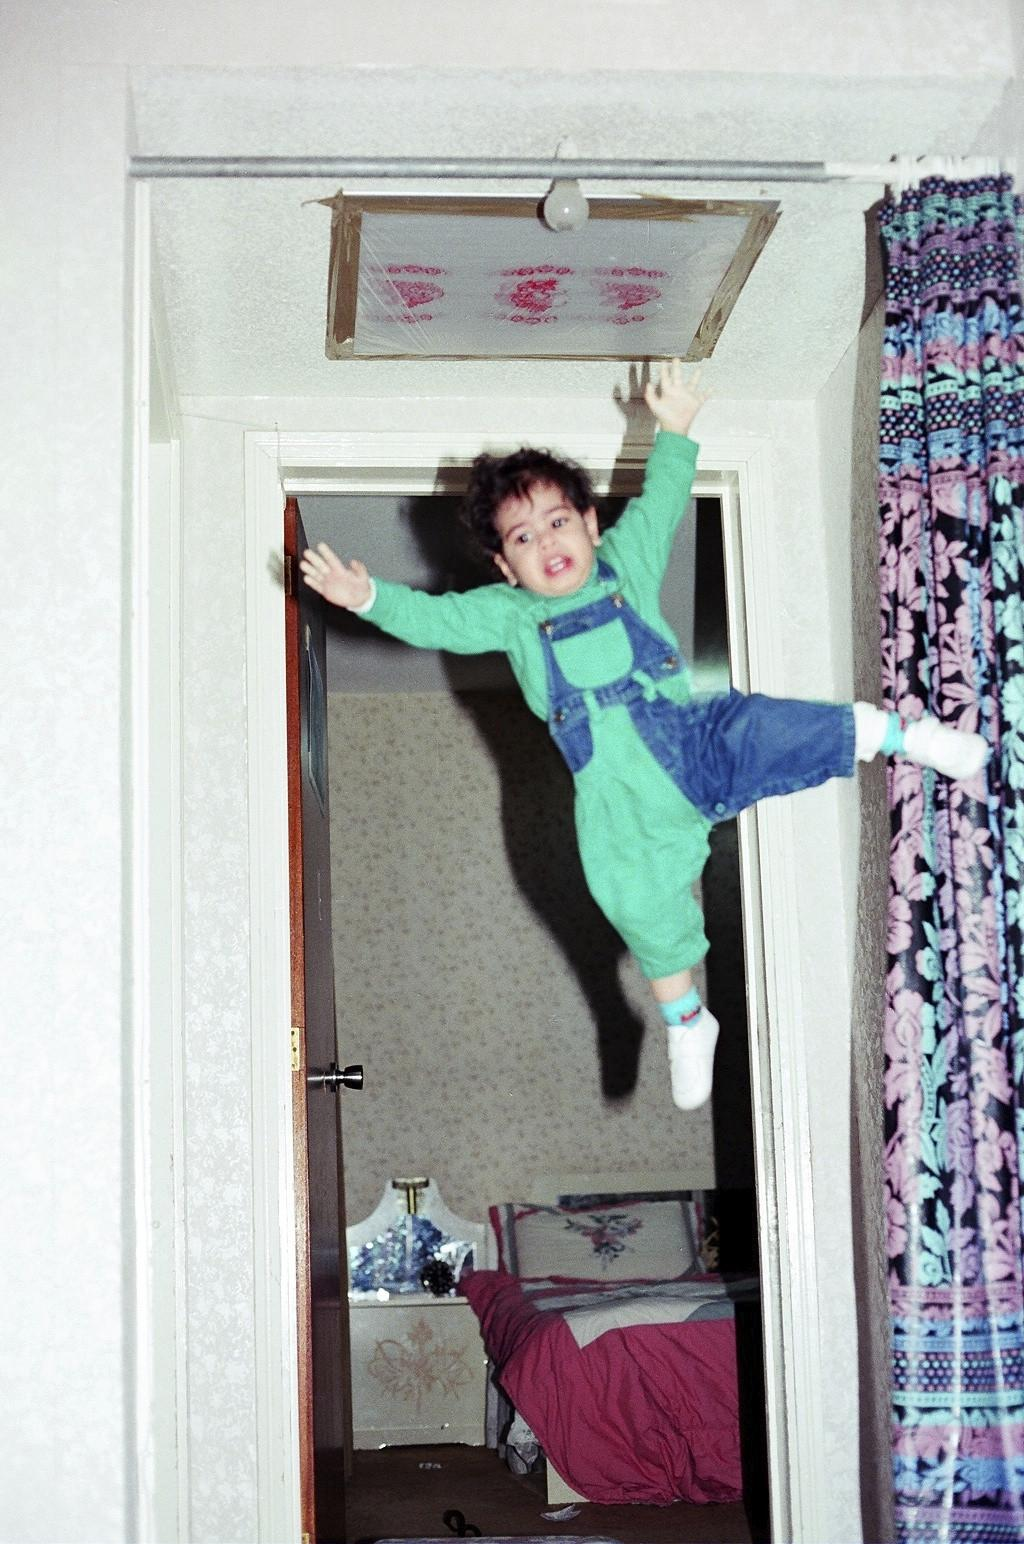 my dad thought 2-year-old me was strong enough to hang from the curtain rod while he takes a picture, timing, fail, lol